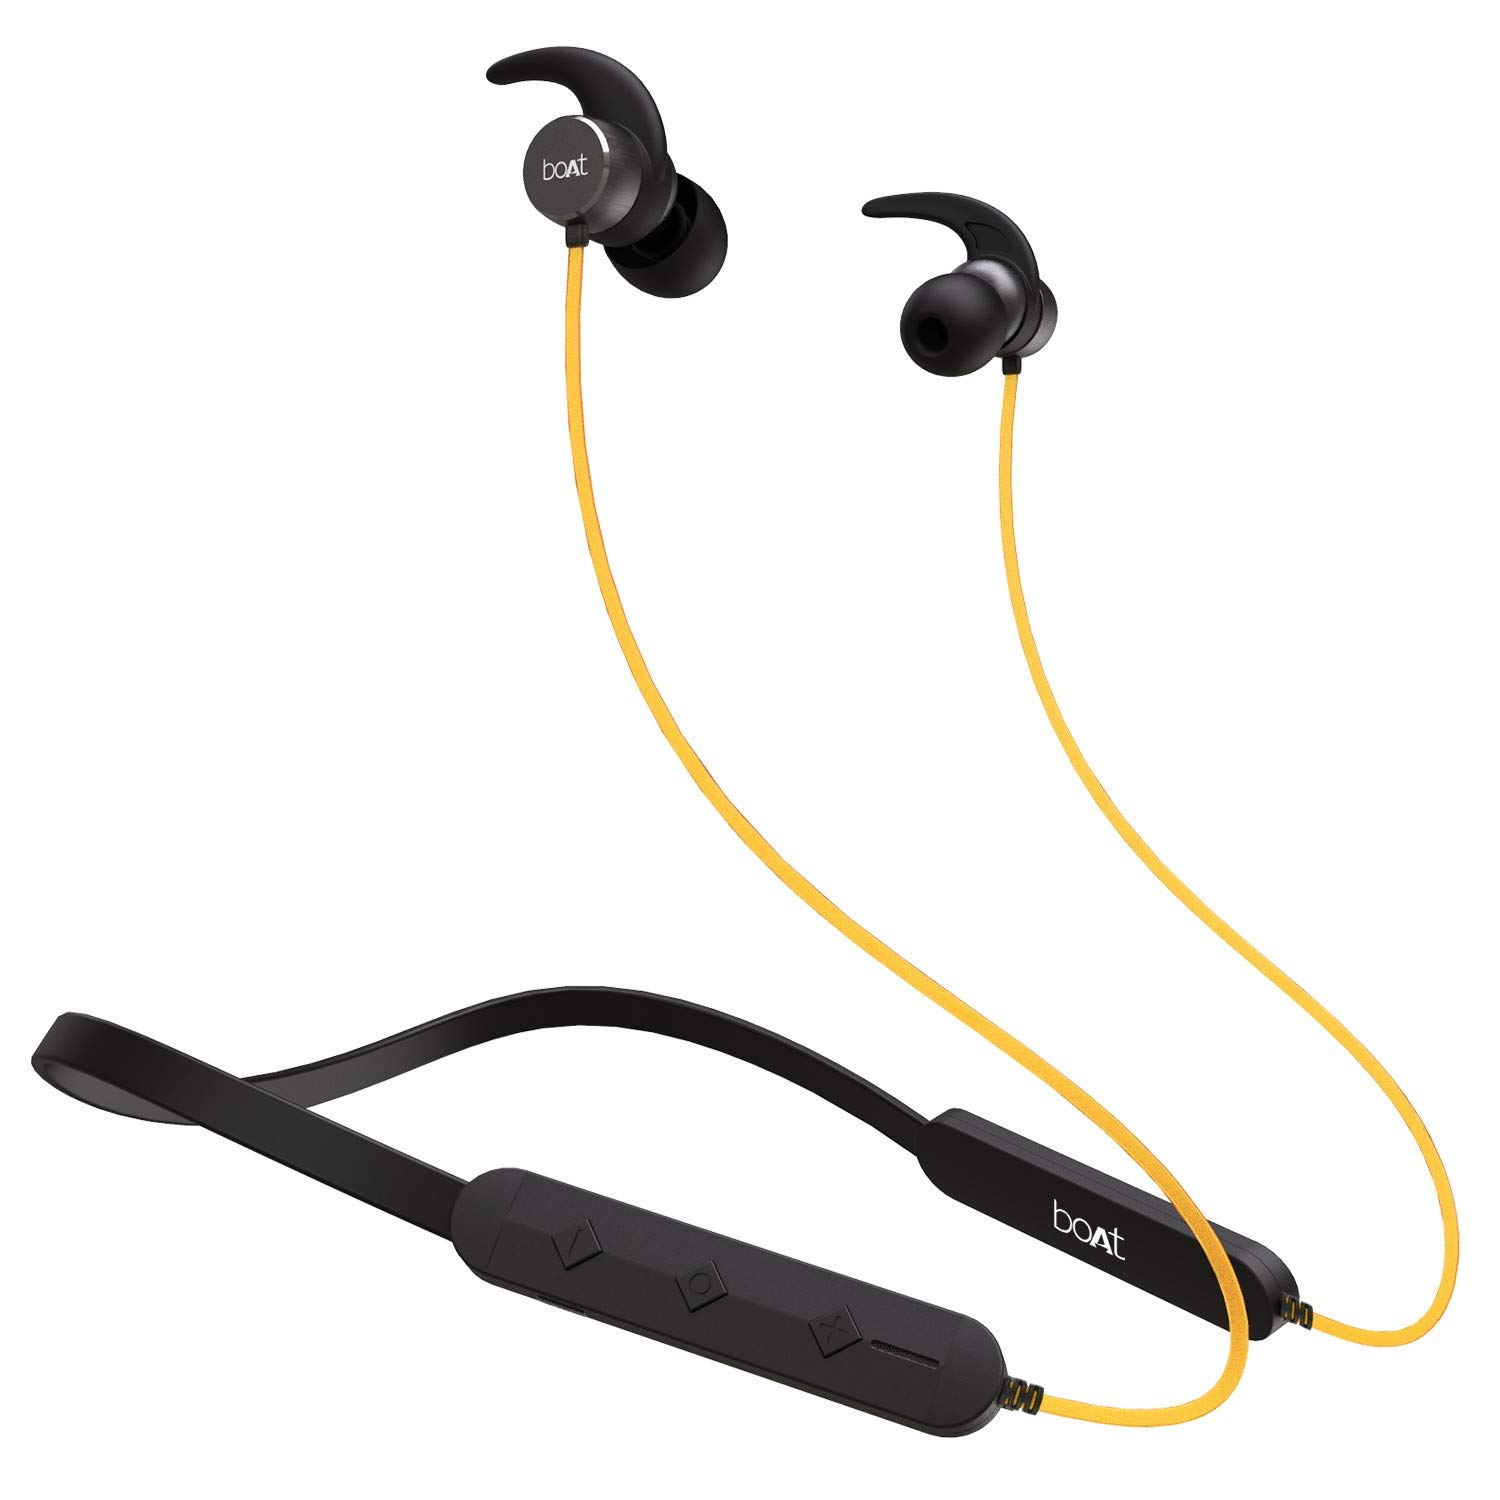 Best Budget WIreless Earphones For Running